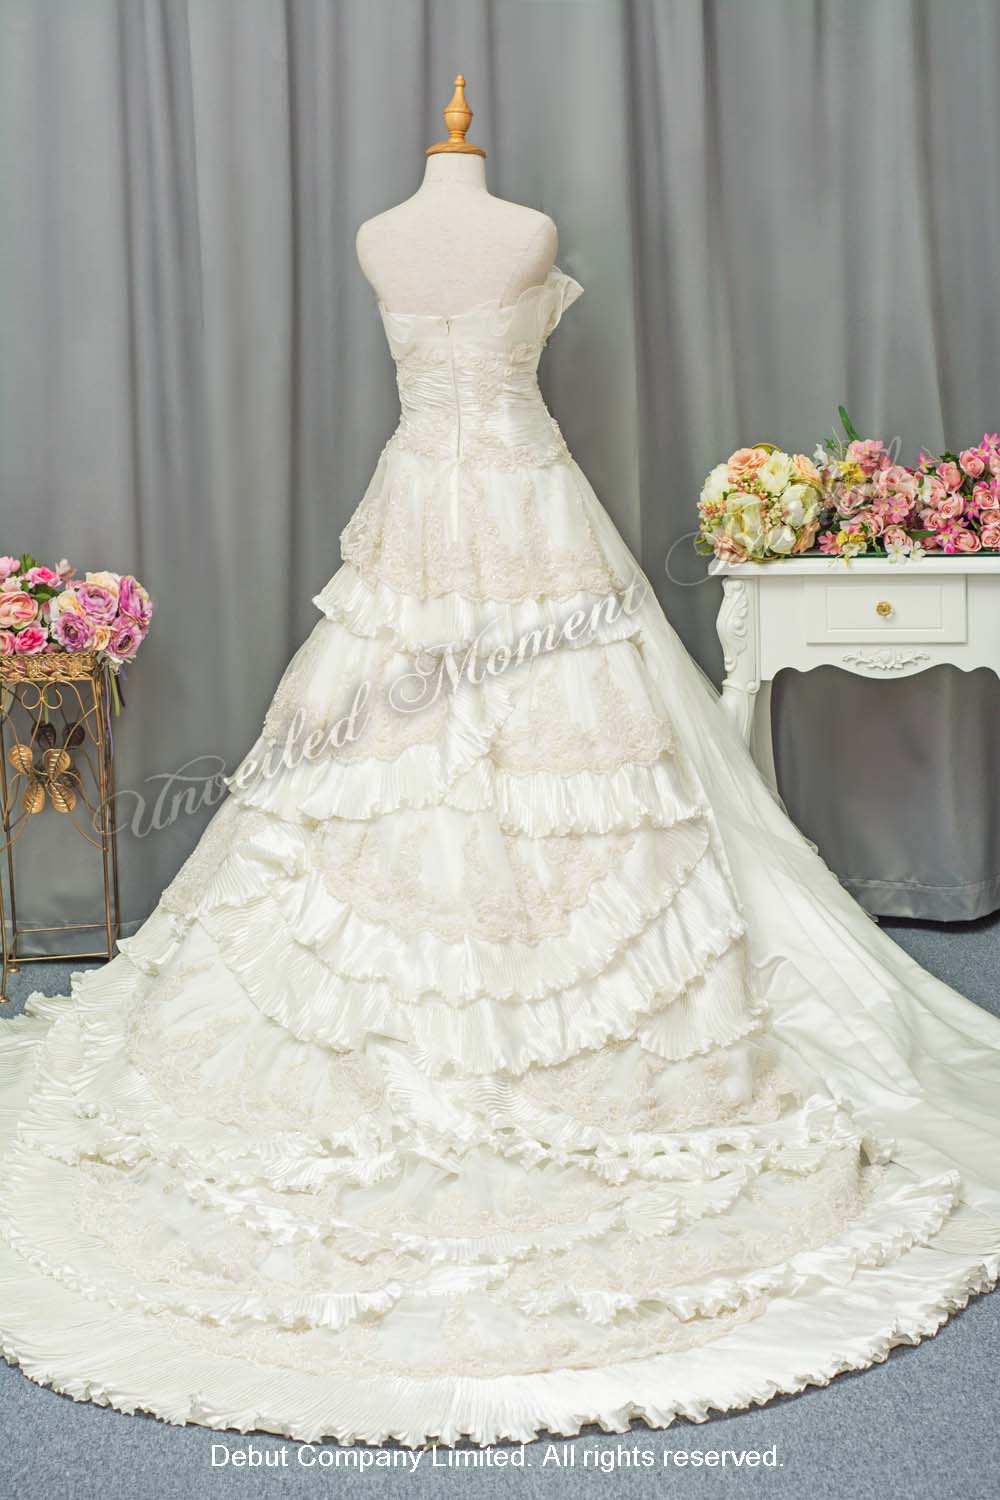 Strapless bridal dress with ruched bodice, chapel train, and asymmetrical layers of lace and pleated ruffles. 無肩帶, 褶疊設計上身, 不對稱層疊設計, 蕾絲釘珠, 長拖尾婚紗